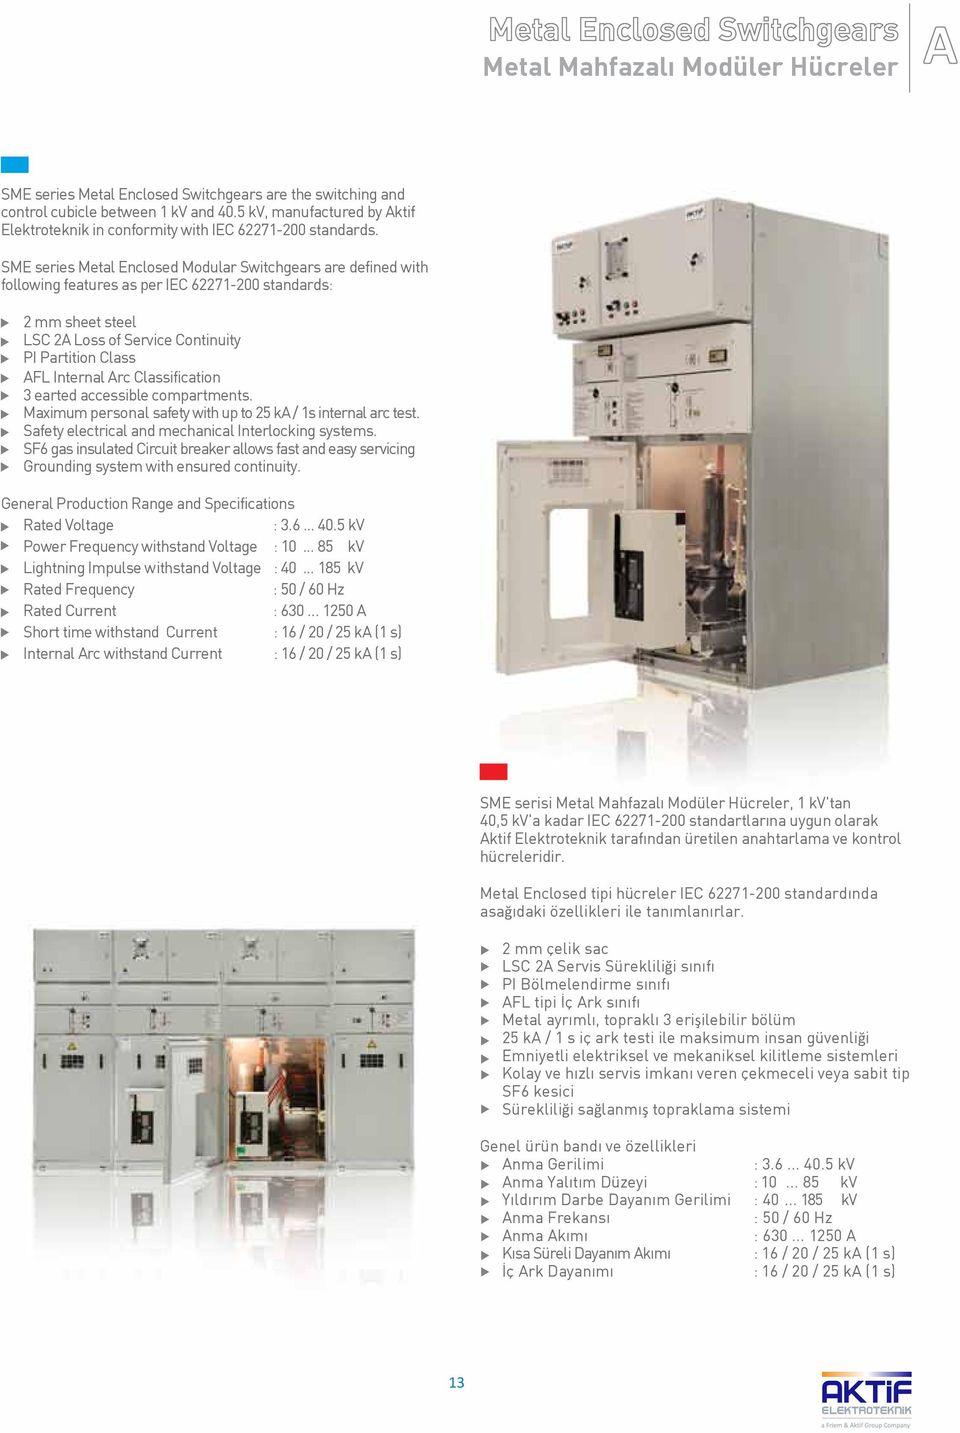 SME series Metal Enclosed Modular Switchgears are defined with following features as per IEC 62271-200 standards: 2 mm sheet steel LSC 2A Loss of Service Continuity PI Partition Class AFL Internal